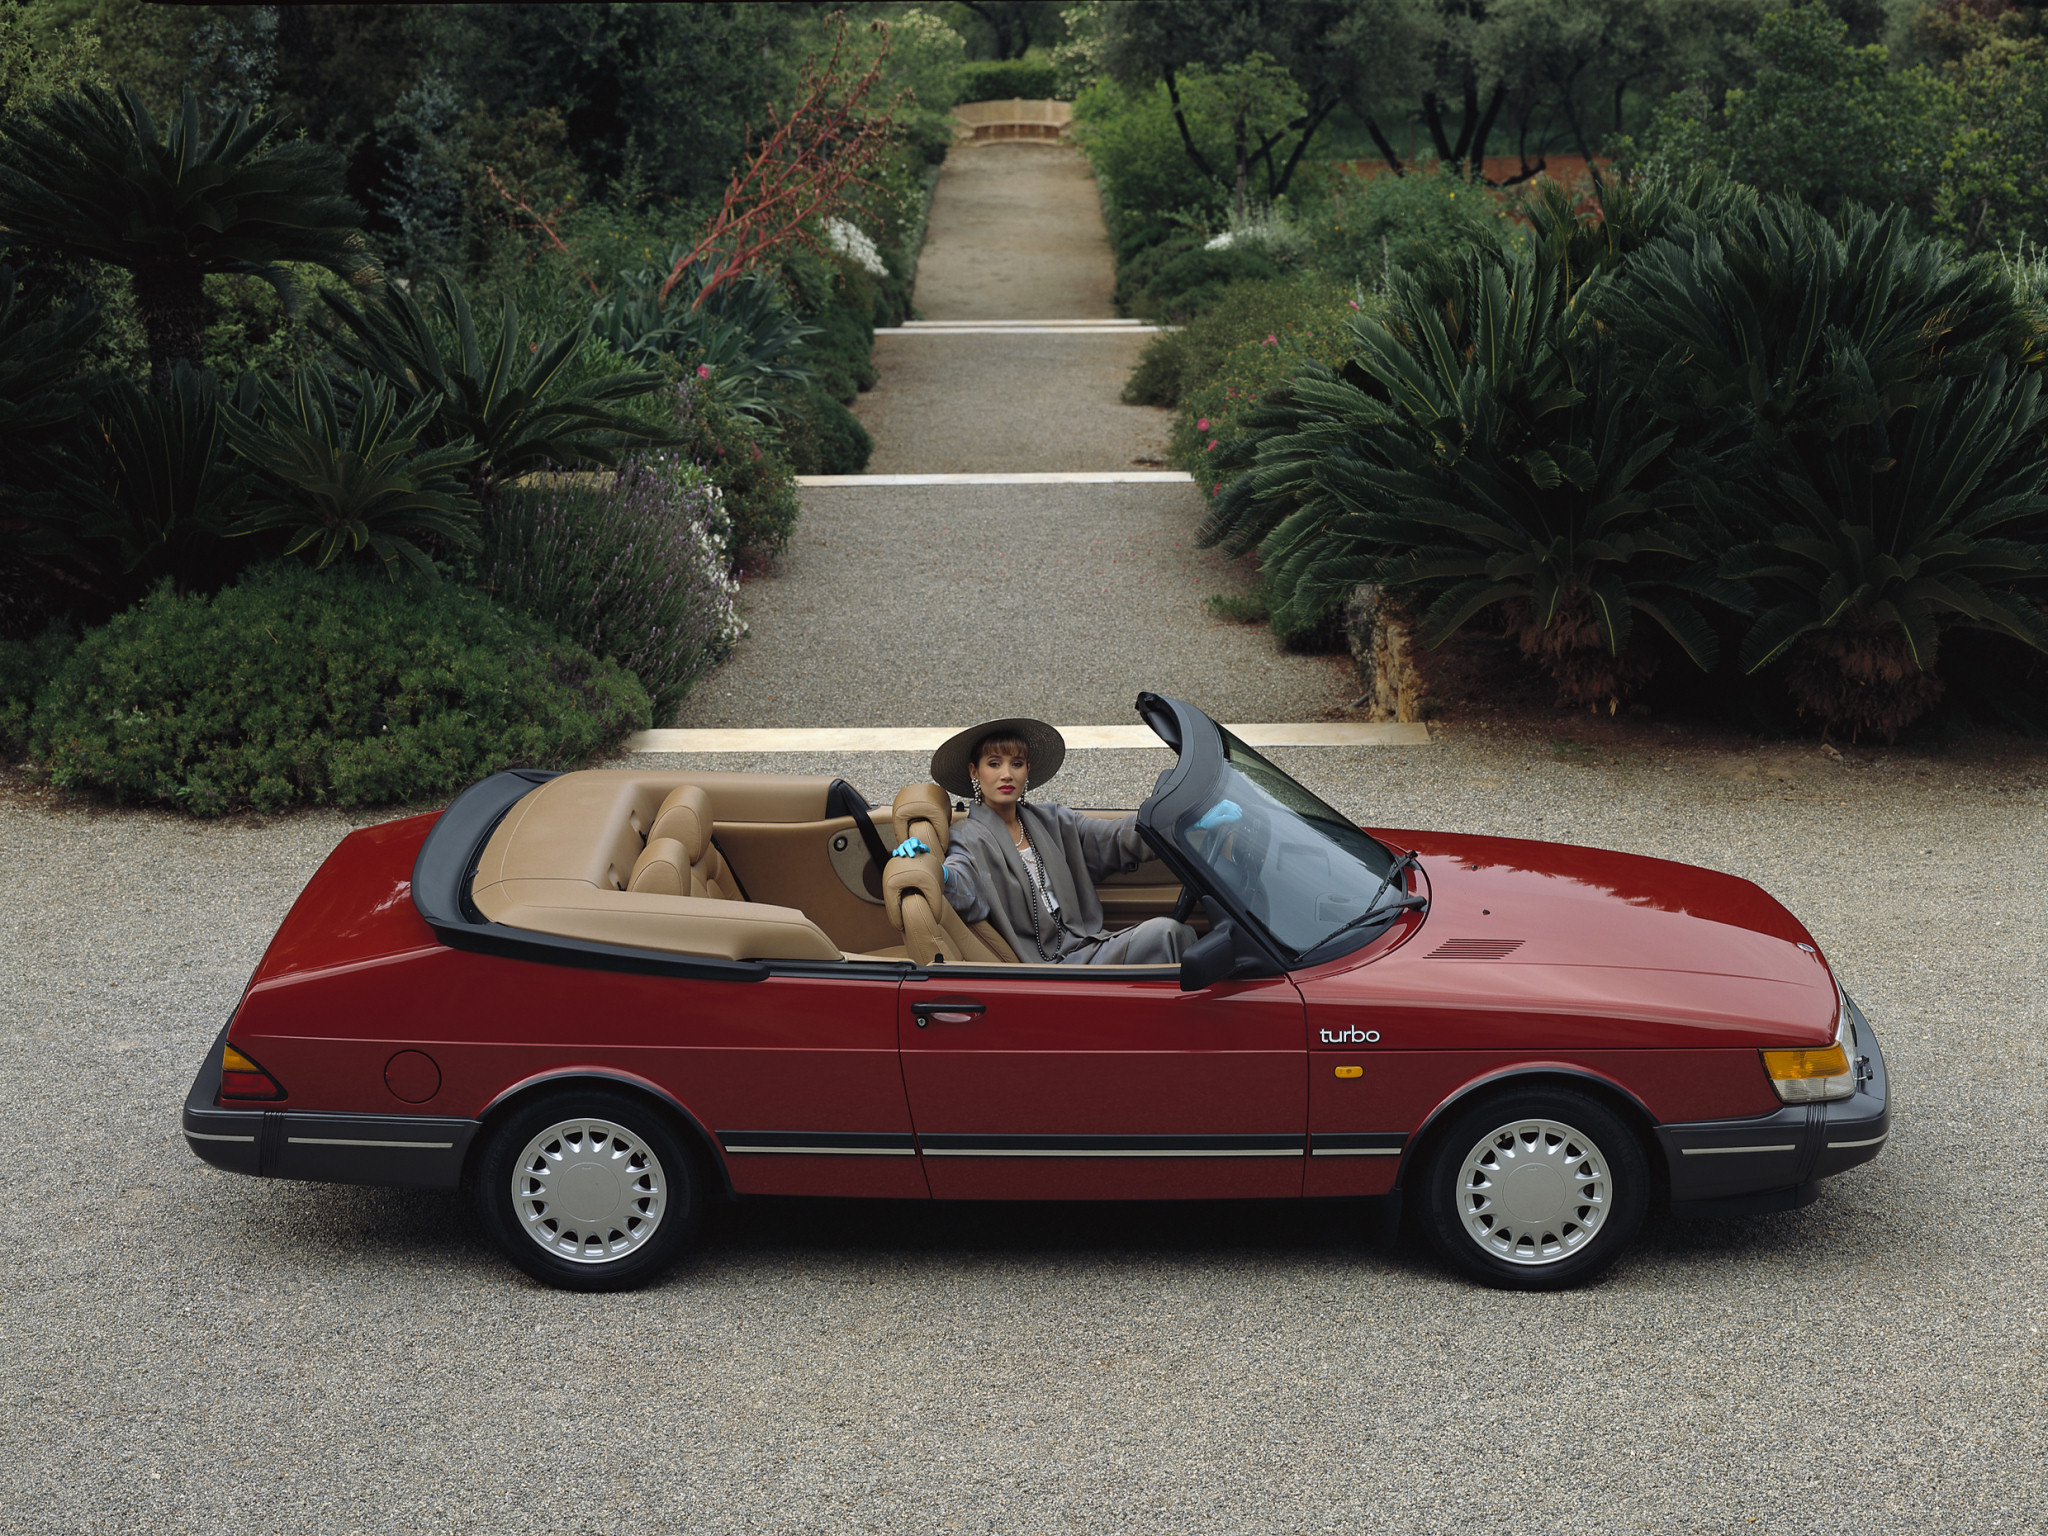 saab 900 convertible 1986 saab 900 convertible 1986 photo 10 car in pictures car photo gallery. Black Bedroom Furniture Sets. Home Design Ideas